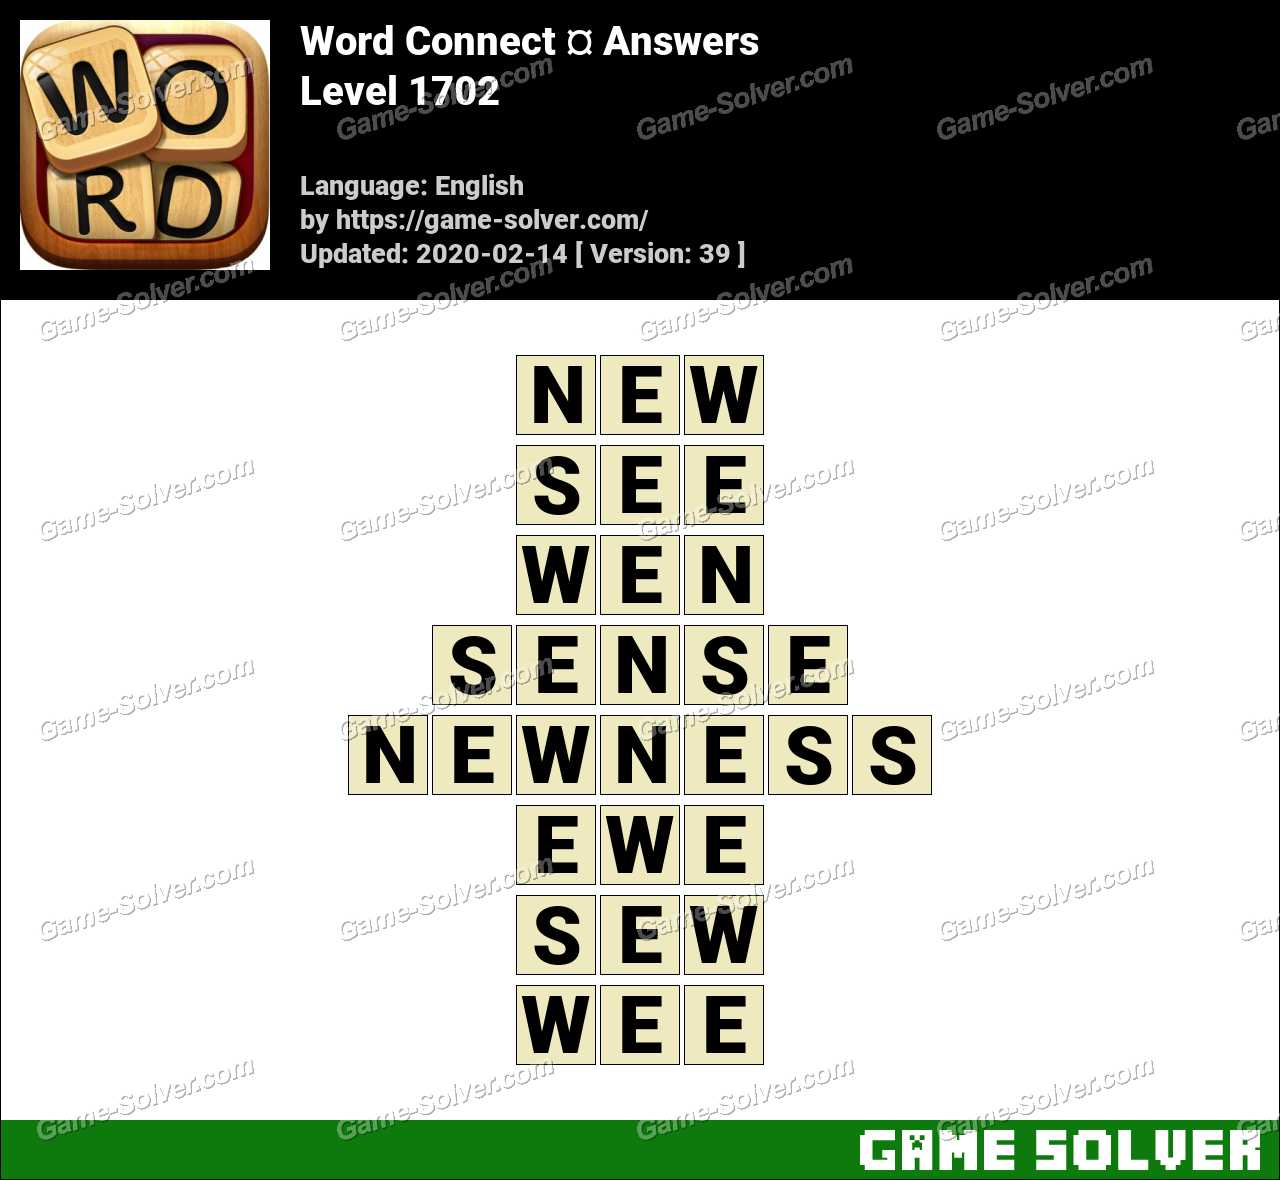 Word Connect Level 1702 Answers